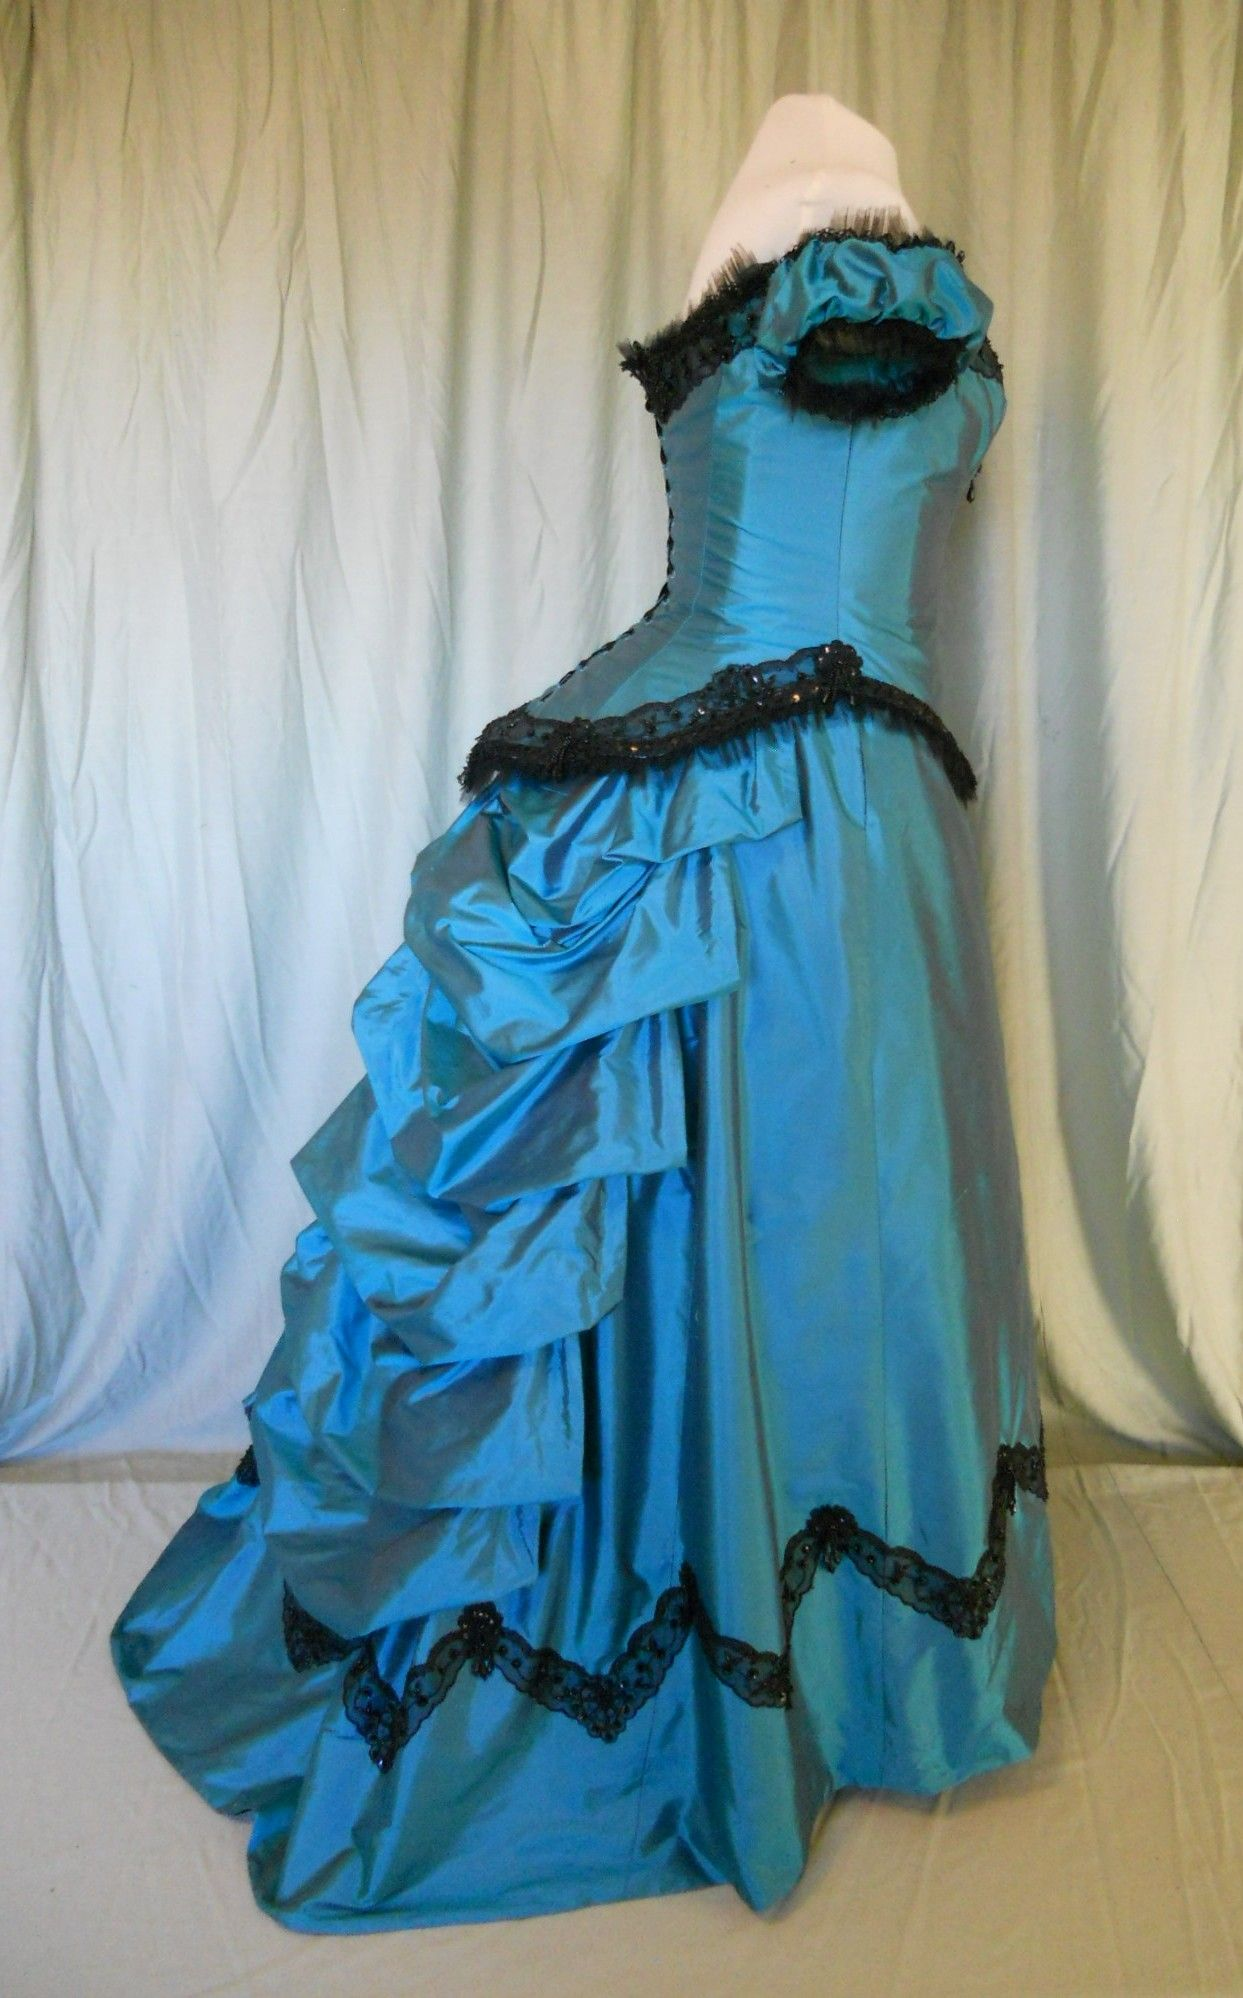 Victorian Ball Gowns Victorian Bustled Ball Gown in Teal